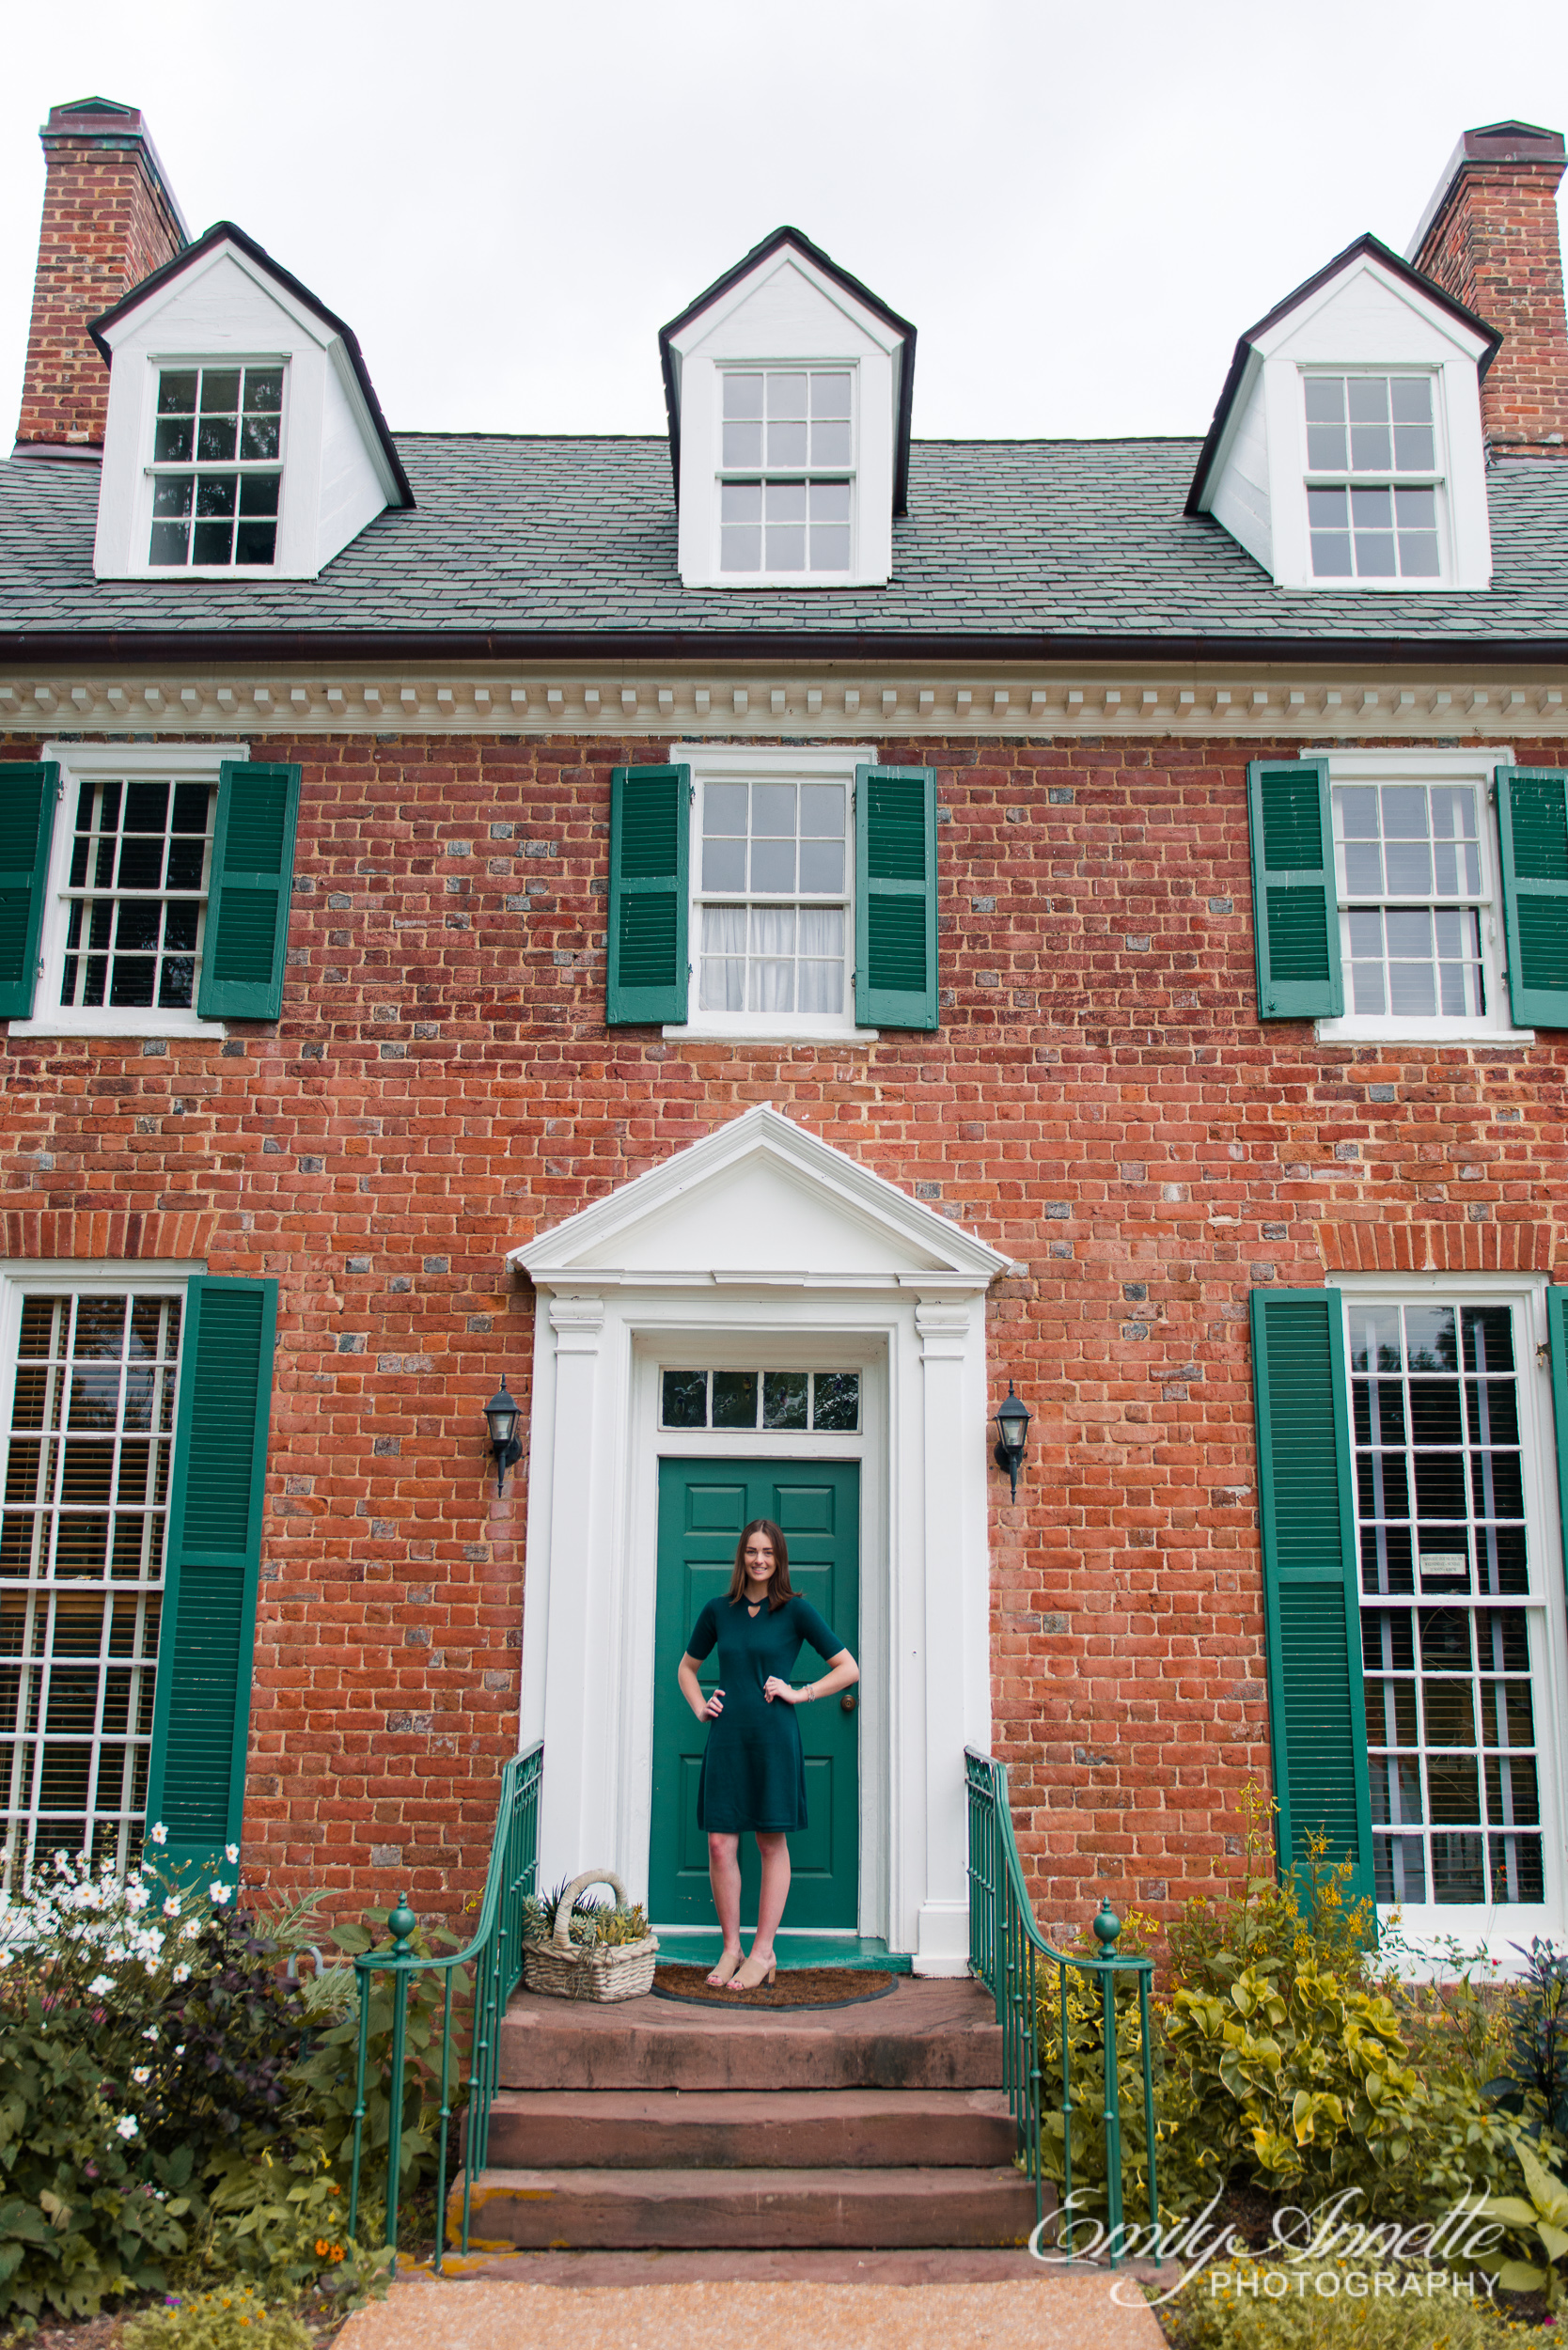 A young woman stands by the door of a historic house in Green Spring Gardens in Fairfax, Virginia